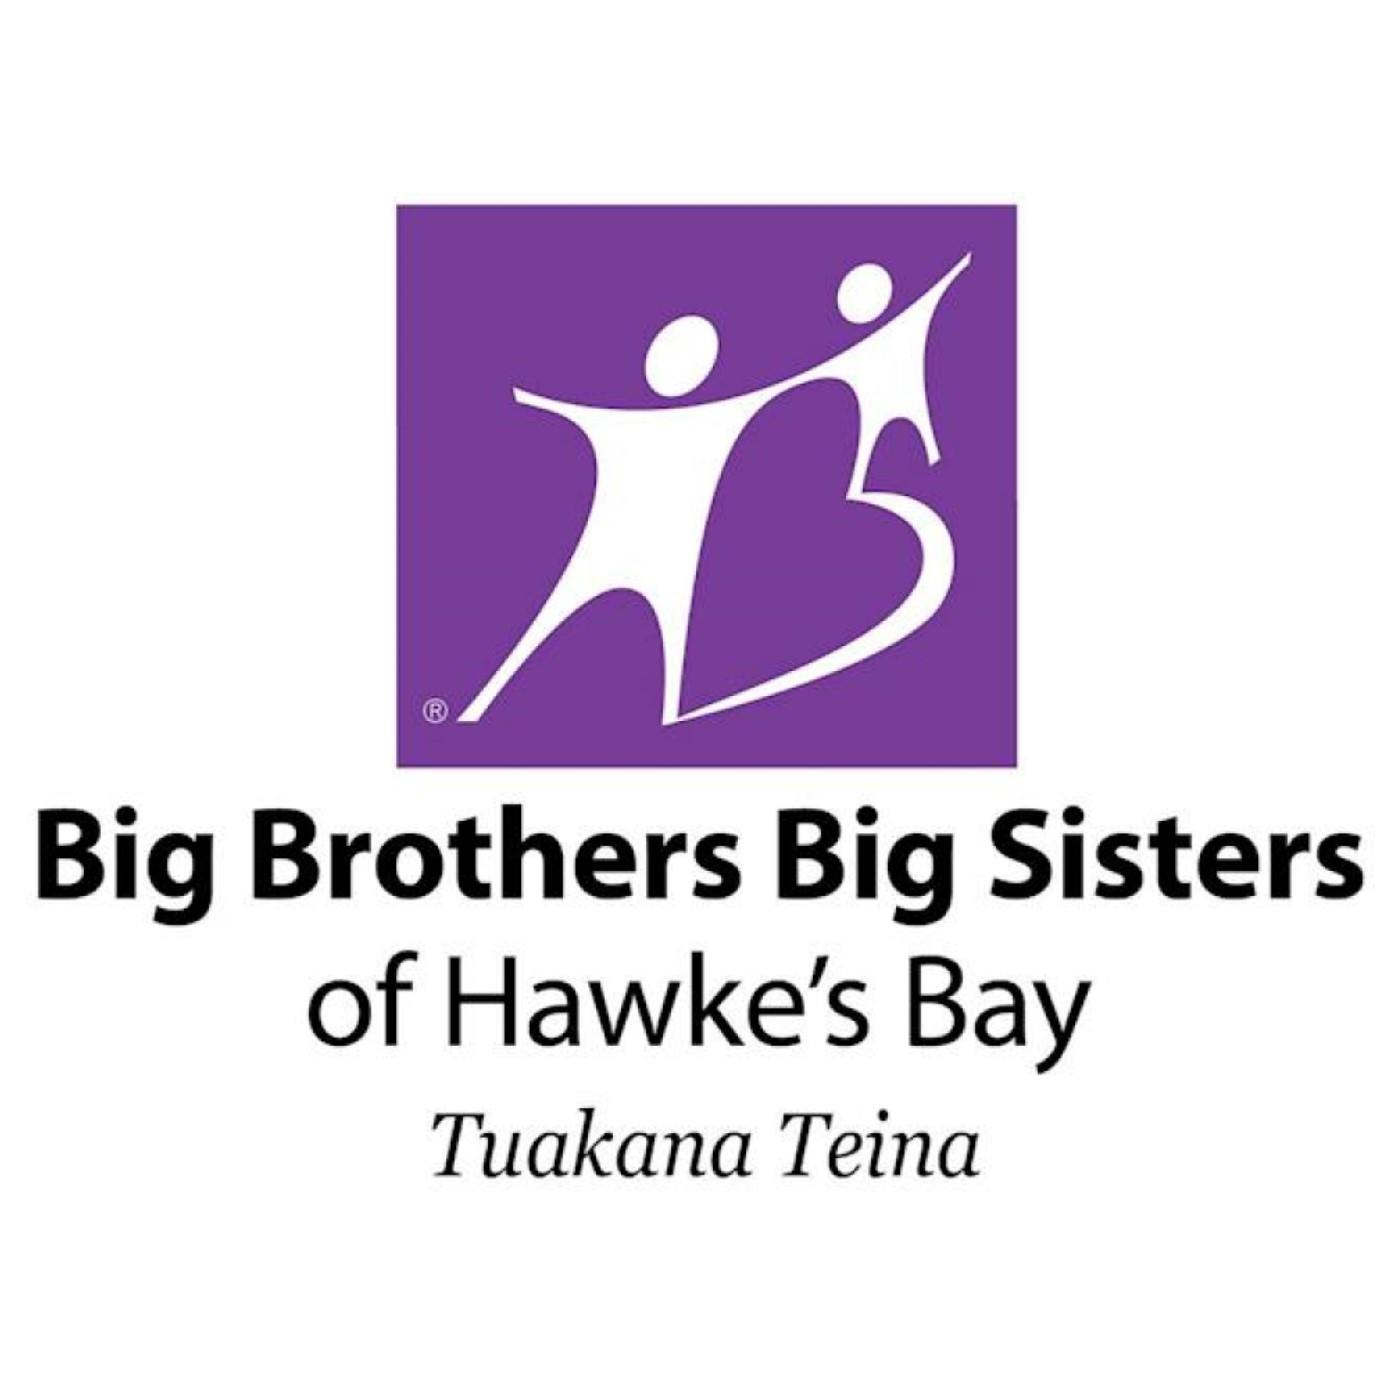 Big Brothers Big Sisters Hawkes Bay